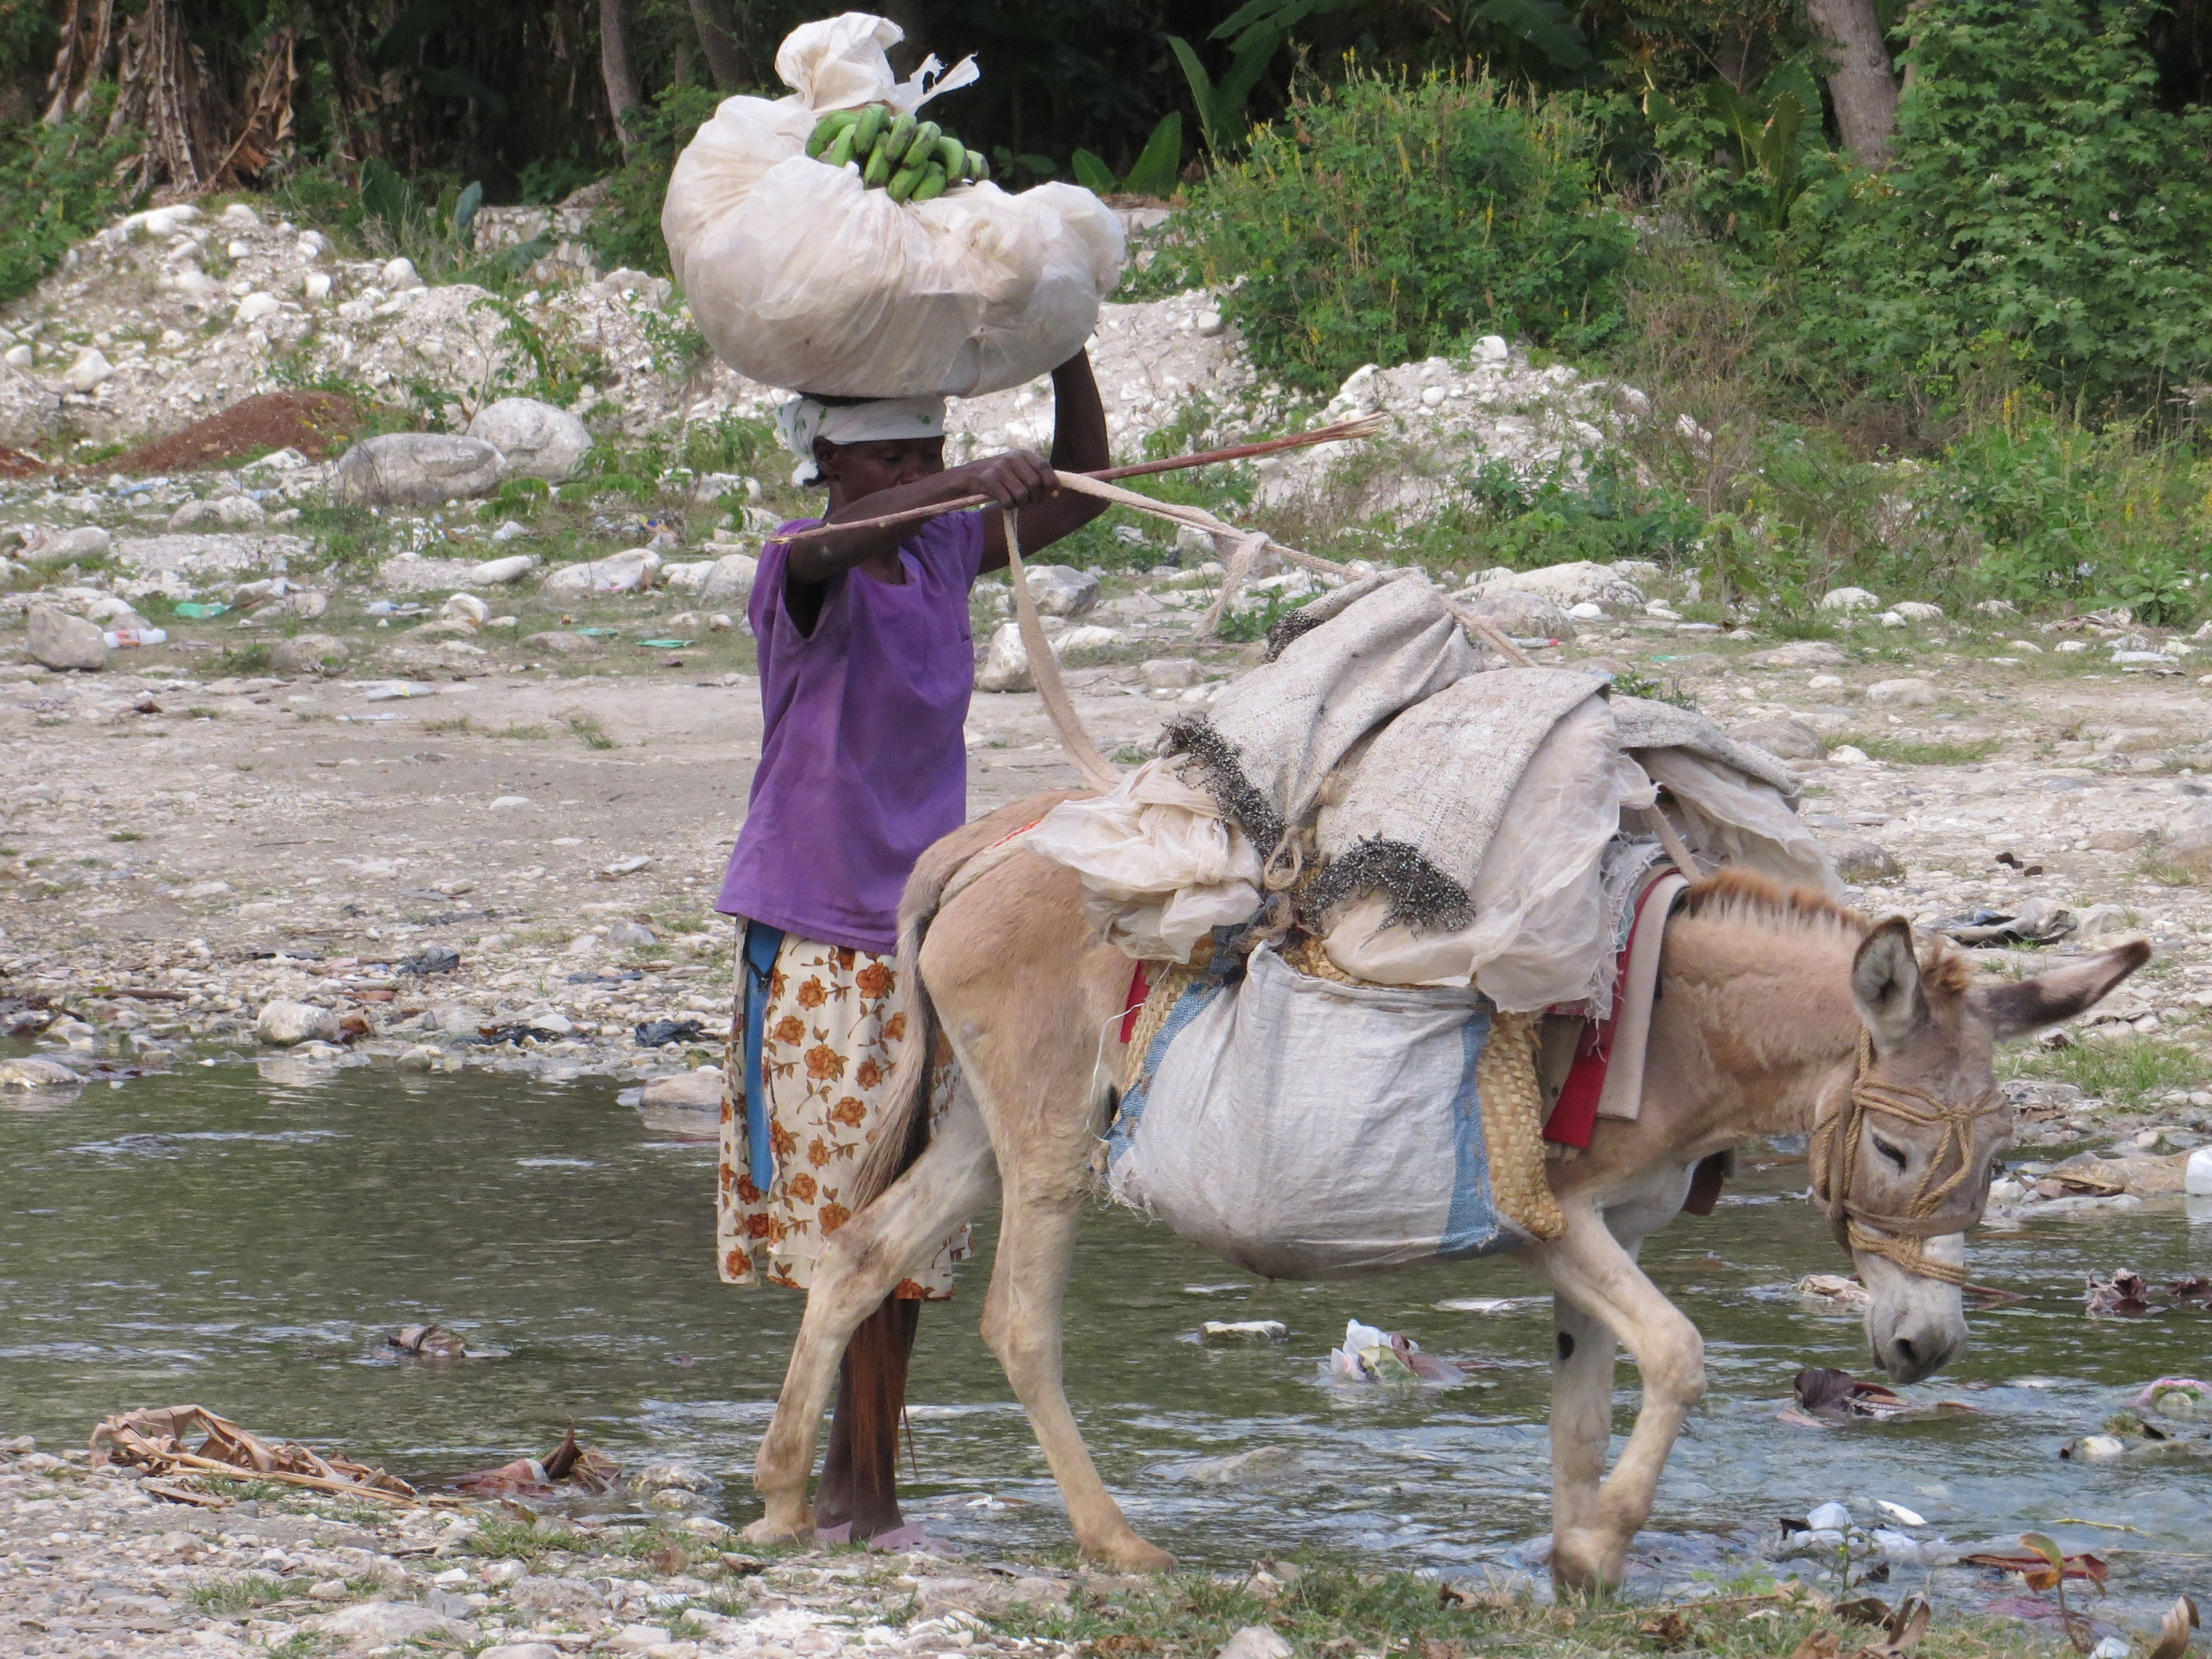 A woman carries supplies along a polluted waterway in the Haitian countryside.